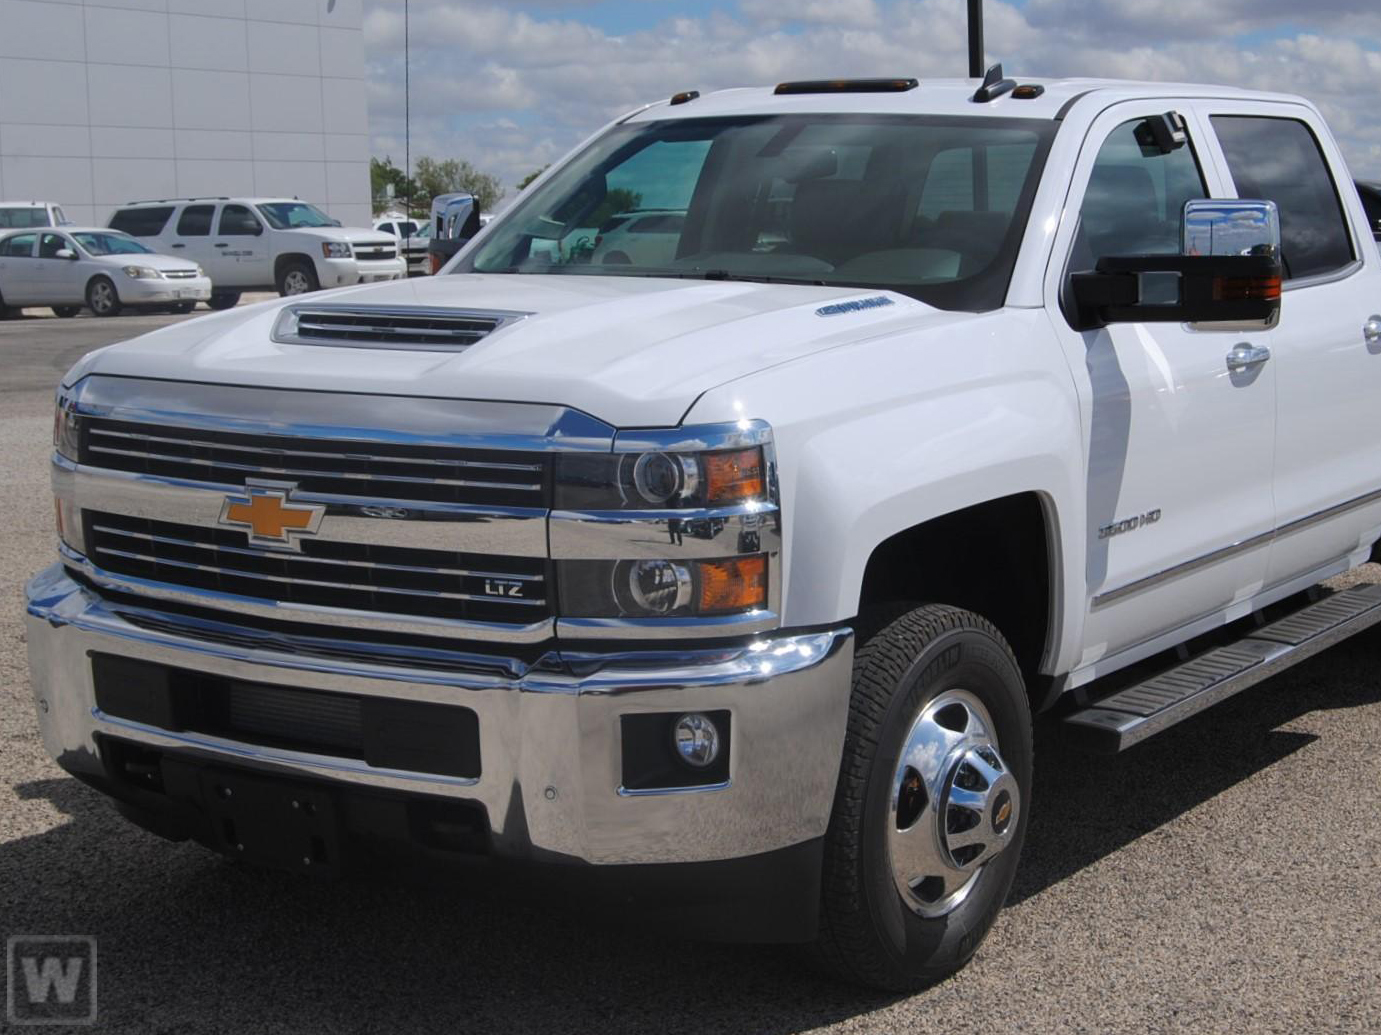 2019 Silverado 3500 Crew Cab 4x4,  Pickup #B19100153 - photo 1